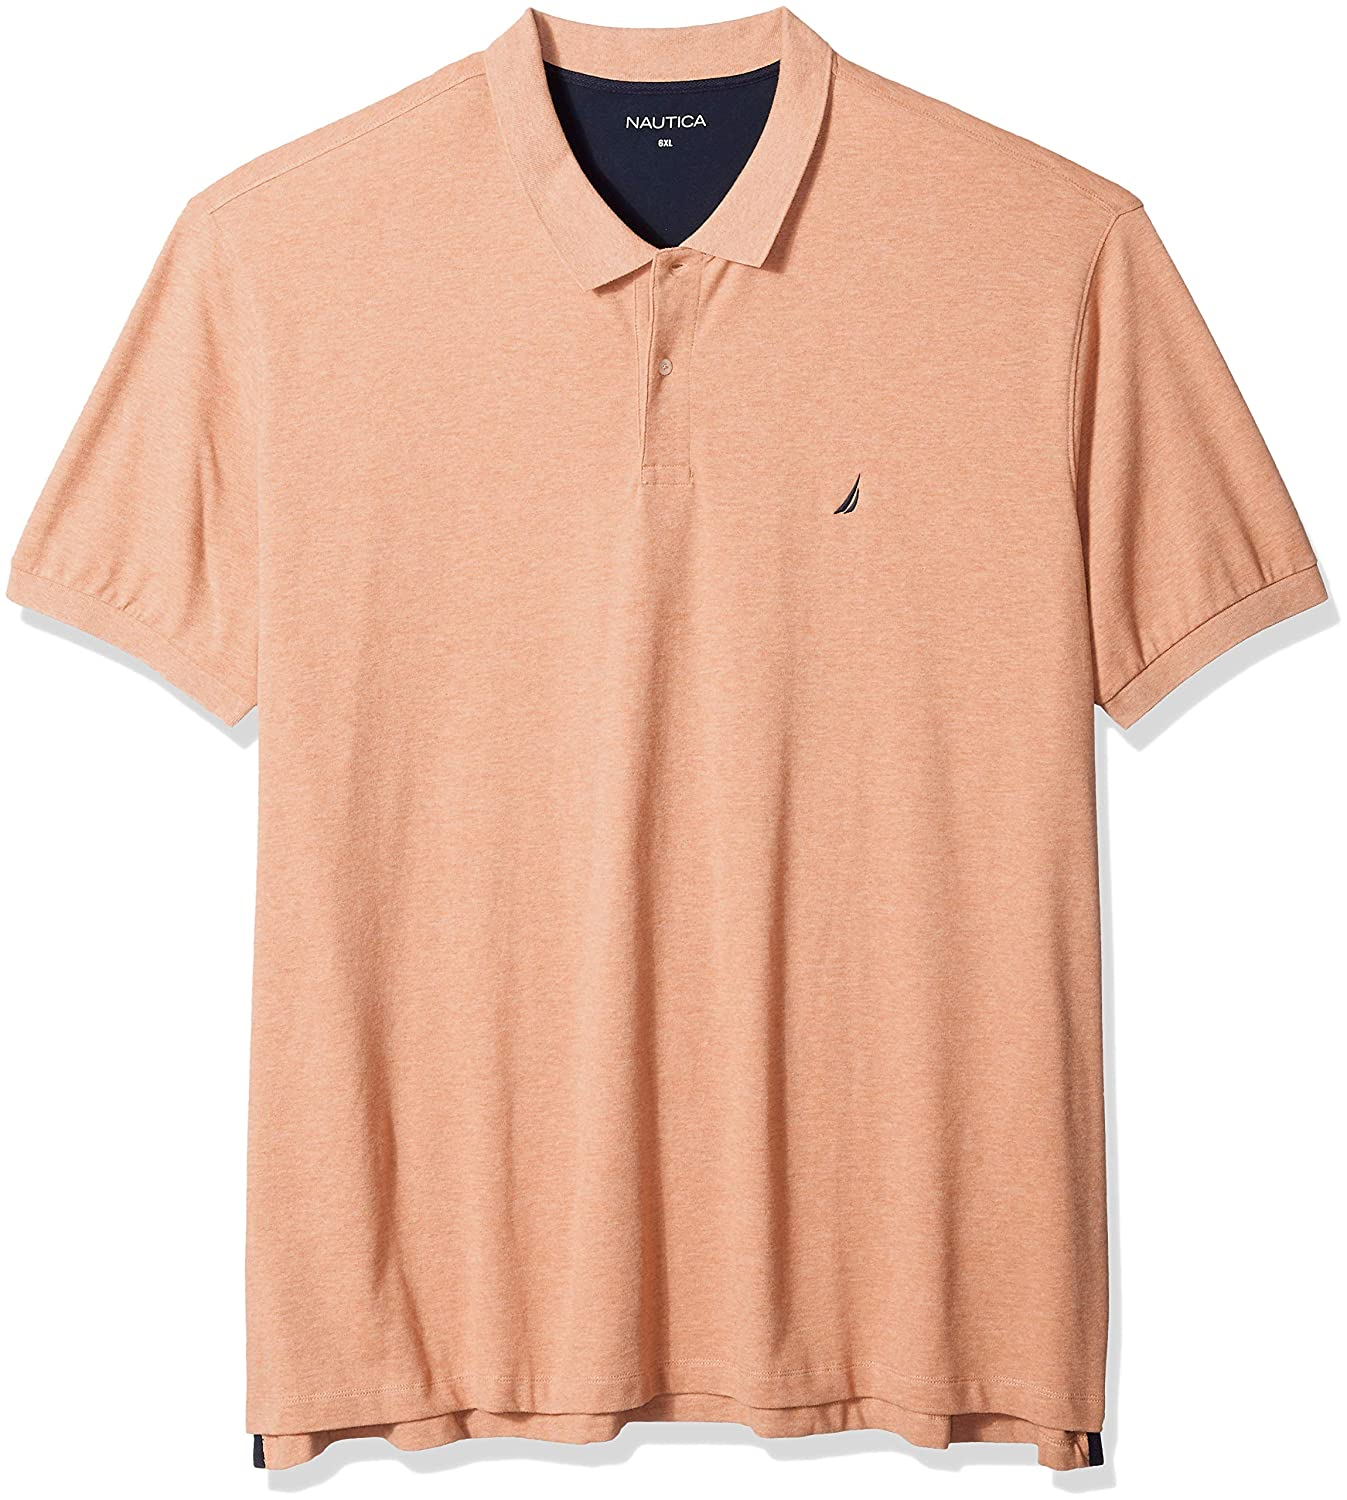 Desert Camel Heather 6X grand Nautica Homme Z81101 Polo